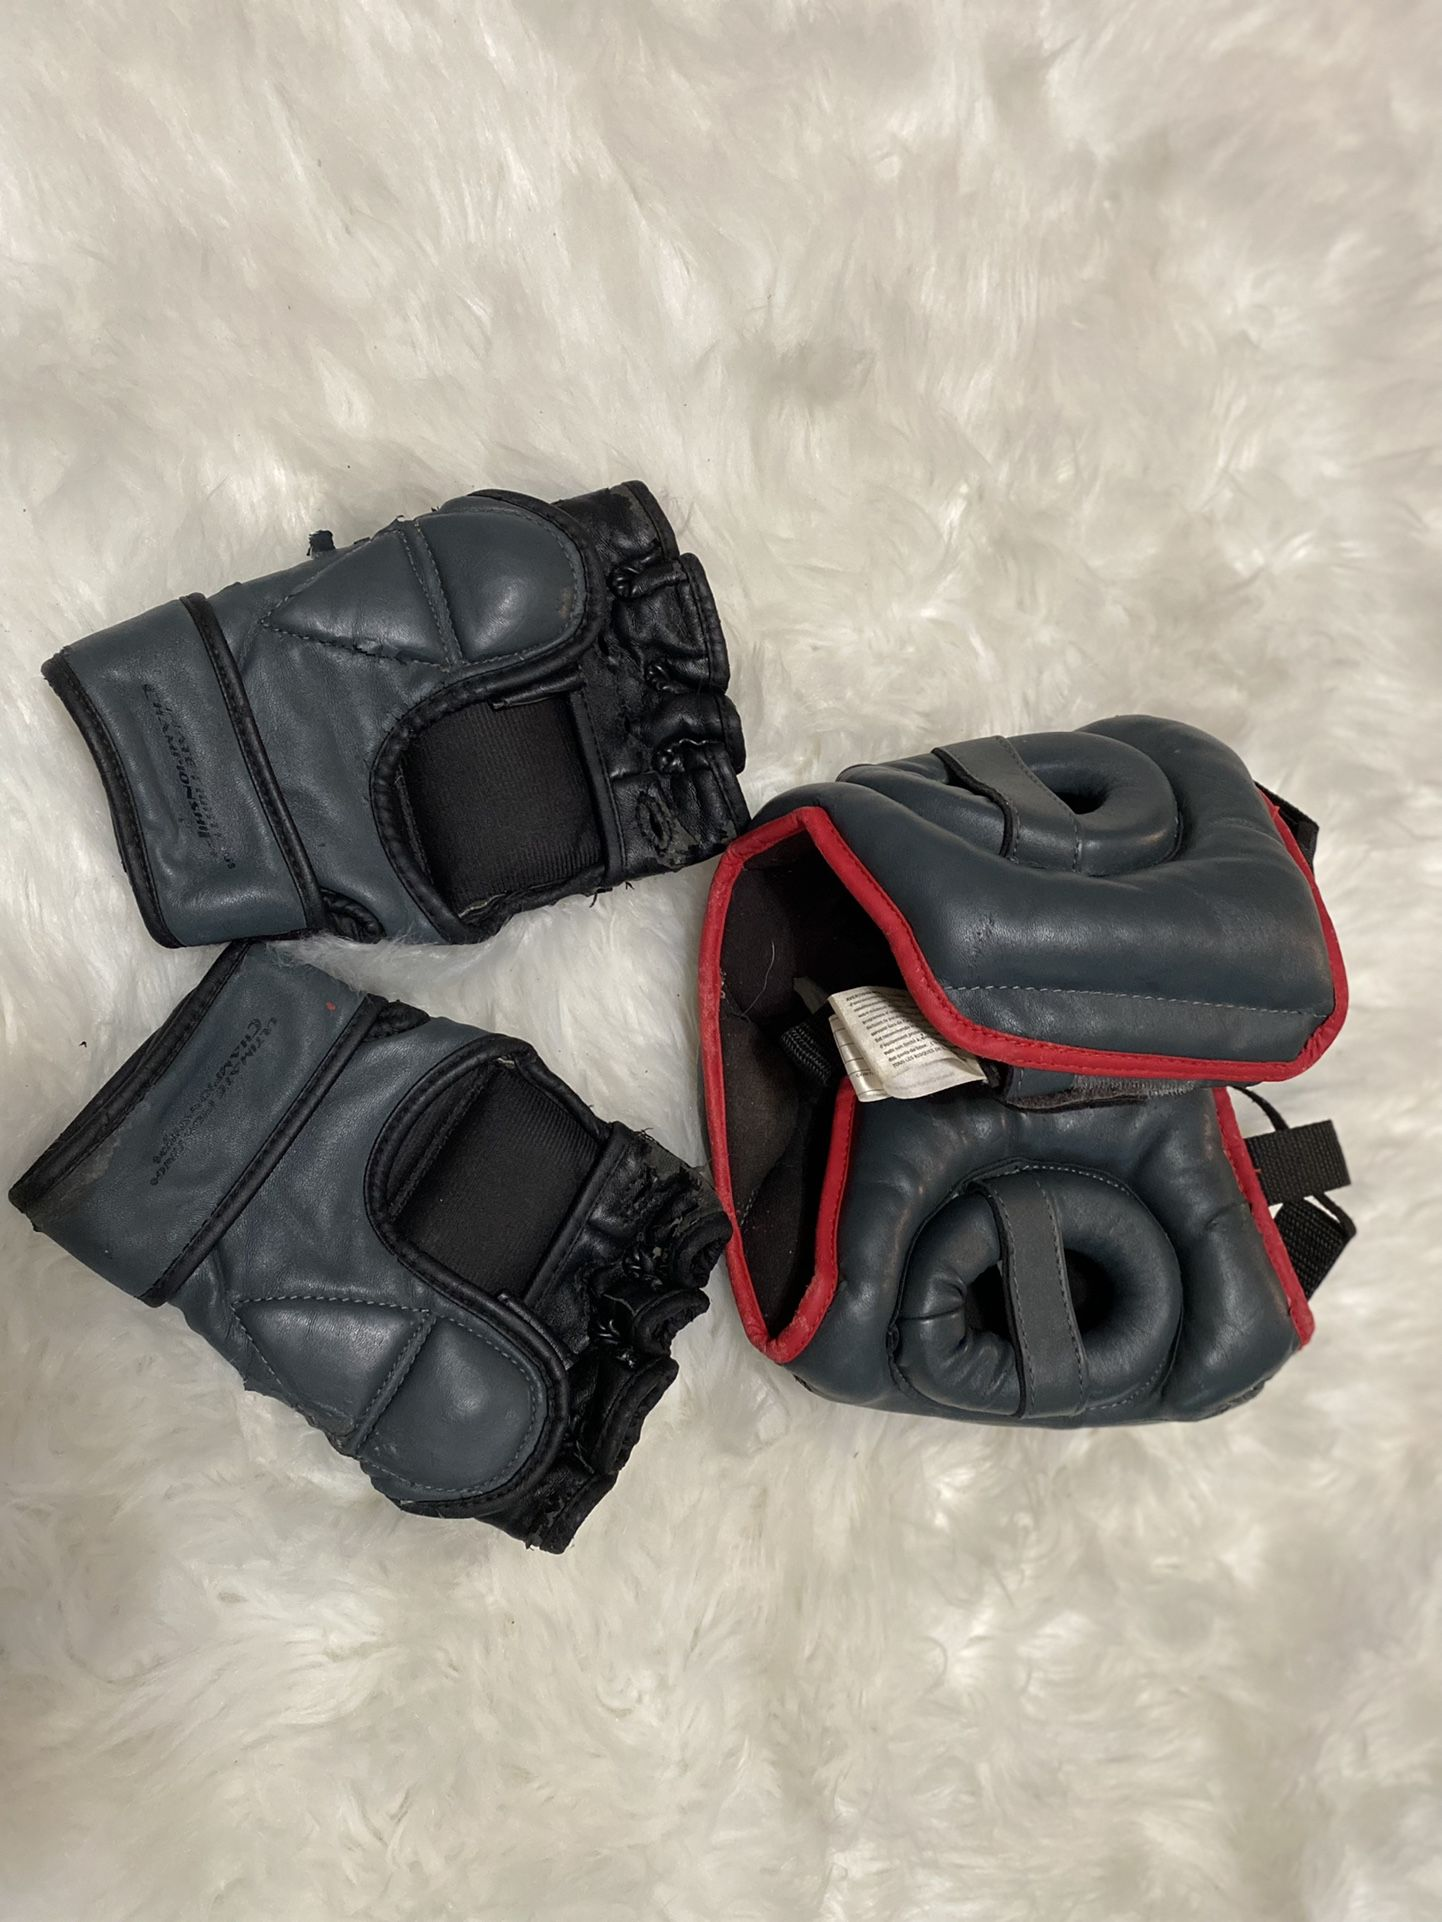 UFC Set Of Head Gear And Mma Gloves